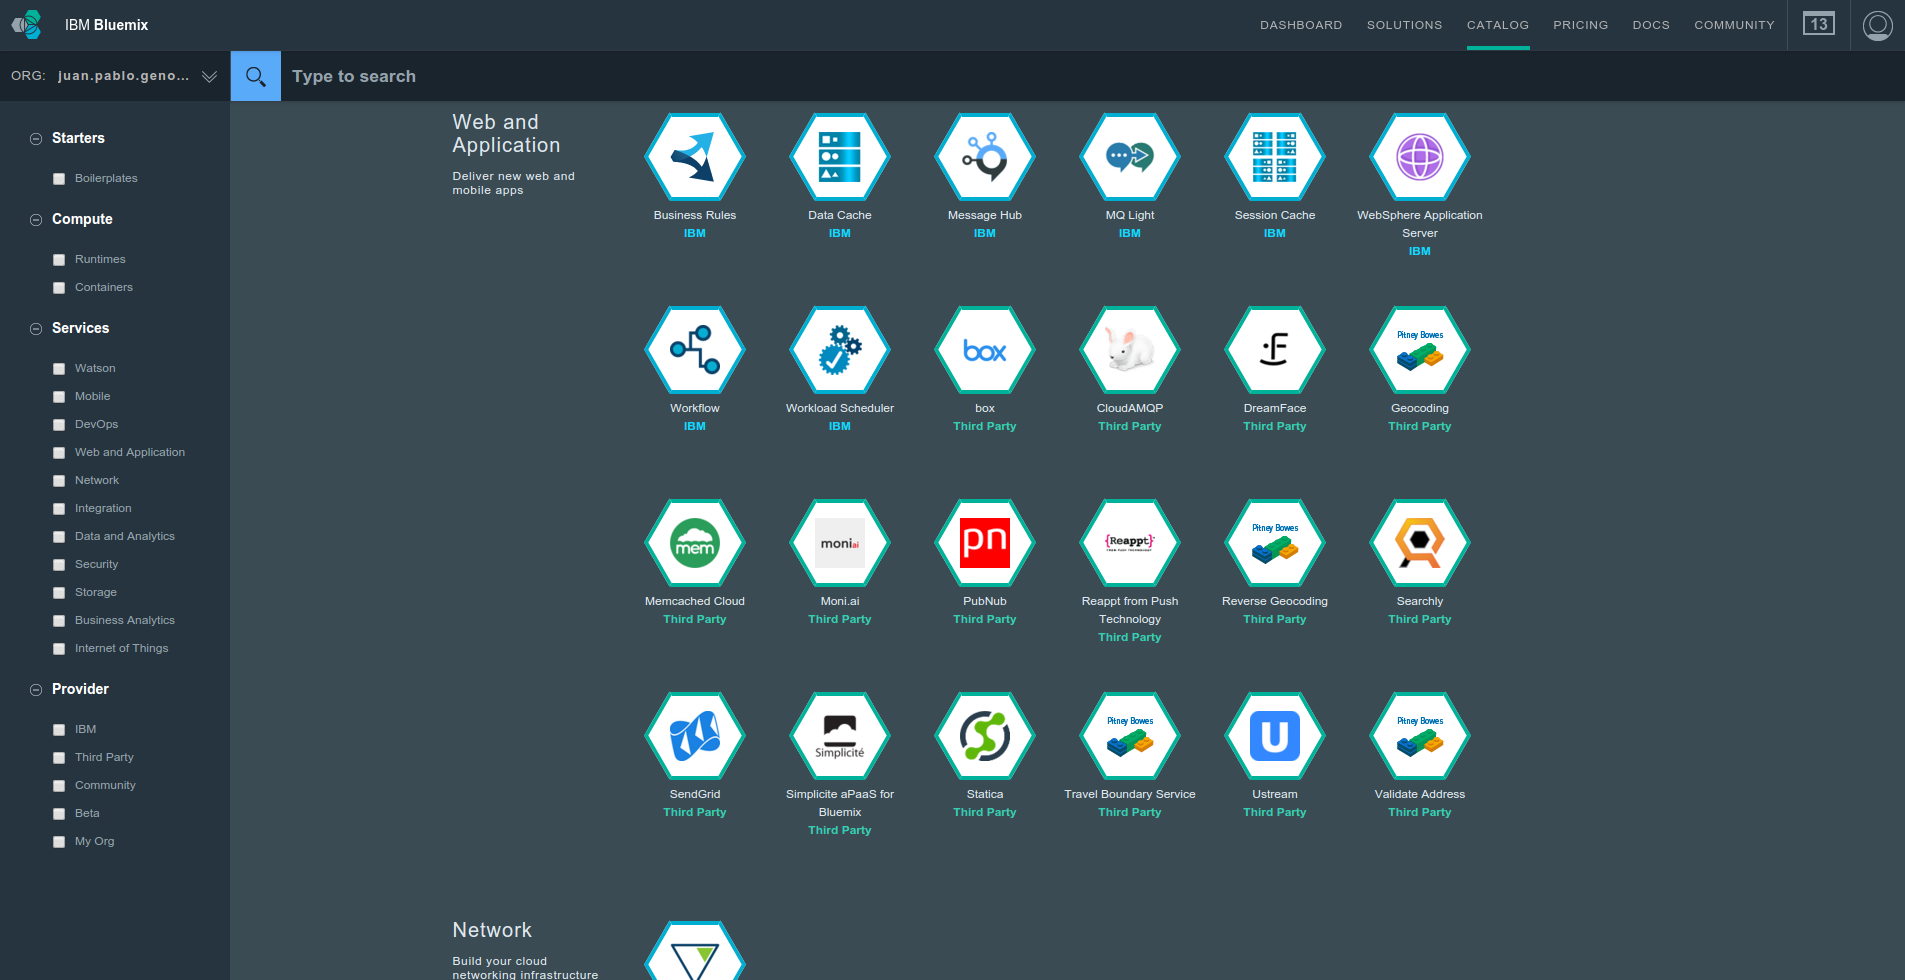 ibm-bluemix-services-catalog